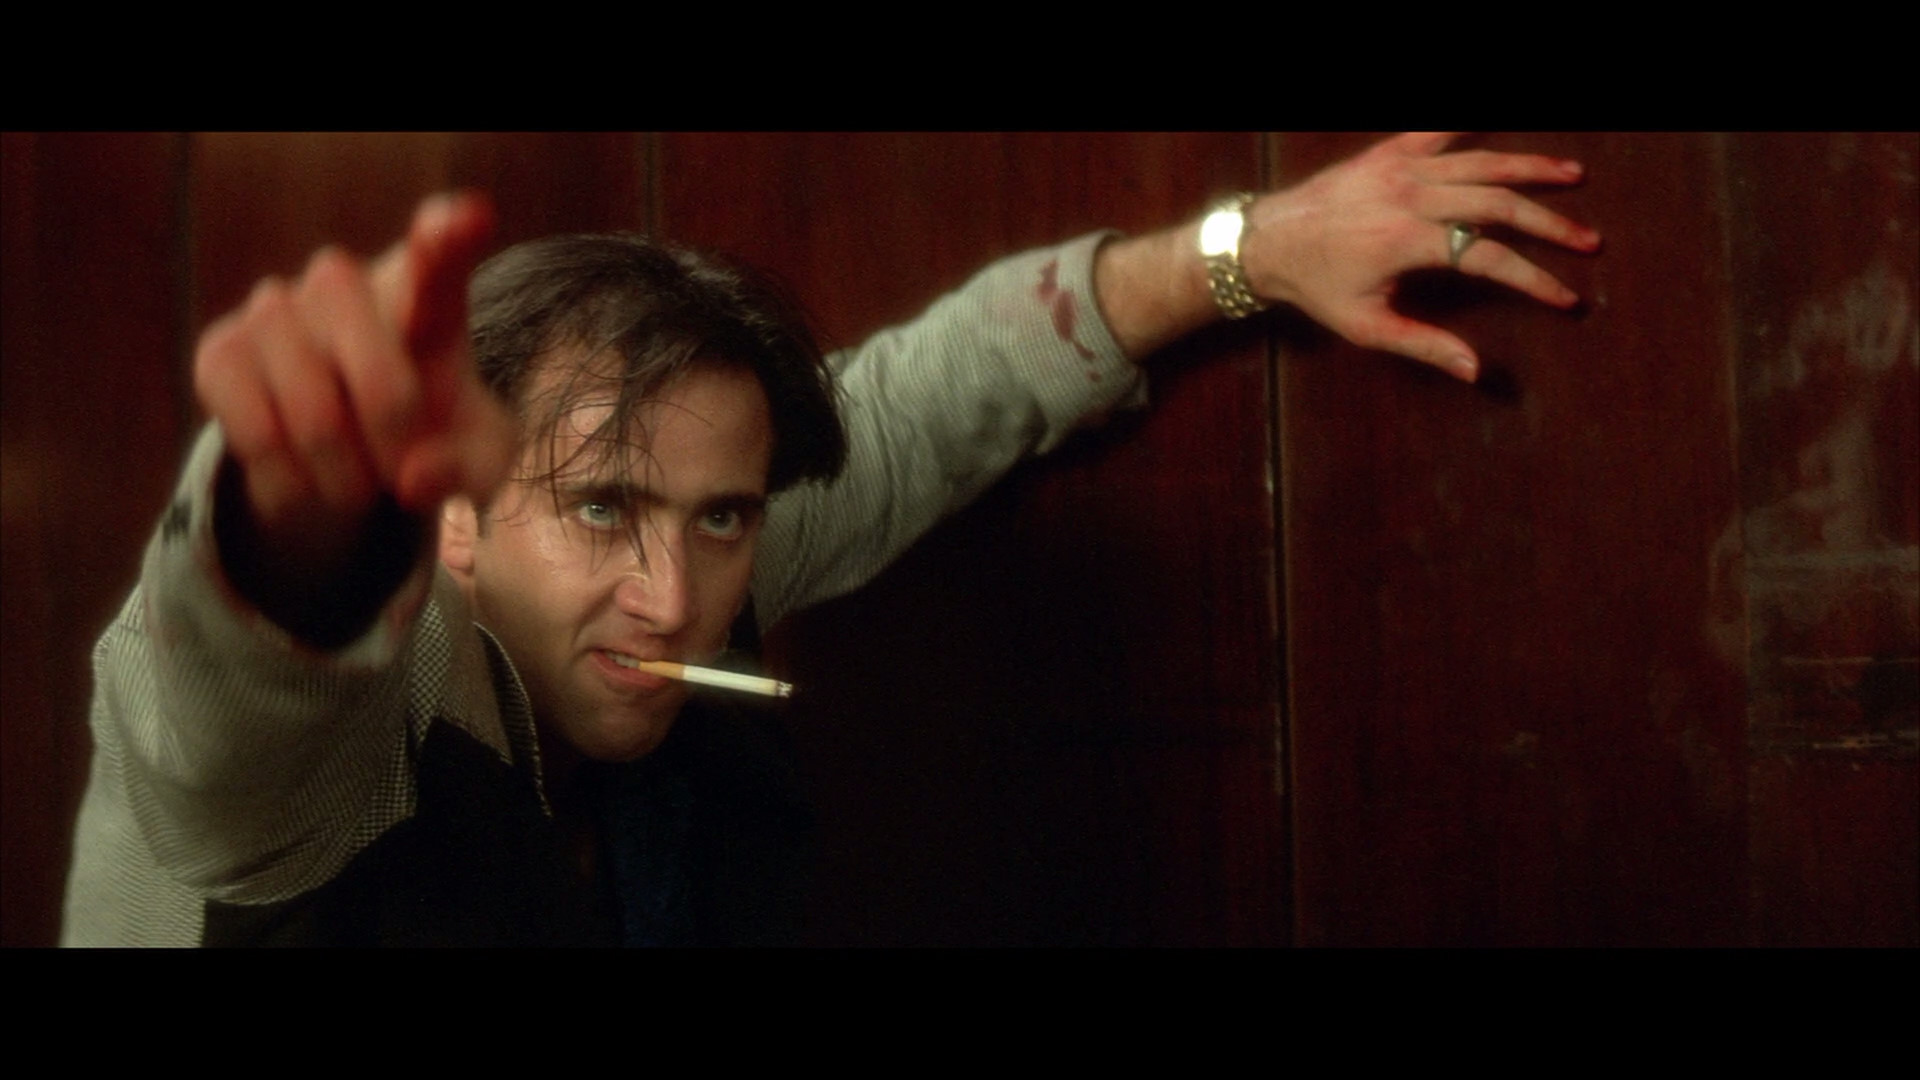 The Enduring Light of Nicolas Cage: Why We Love Hollywood's Craziest Actor